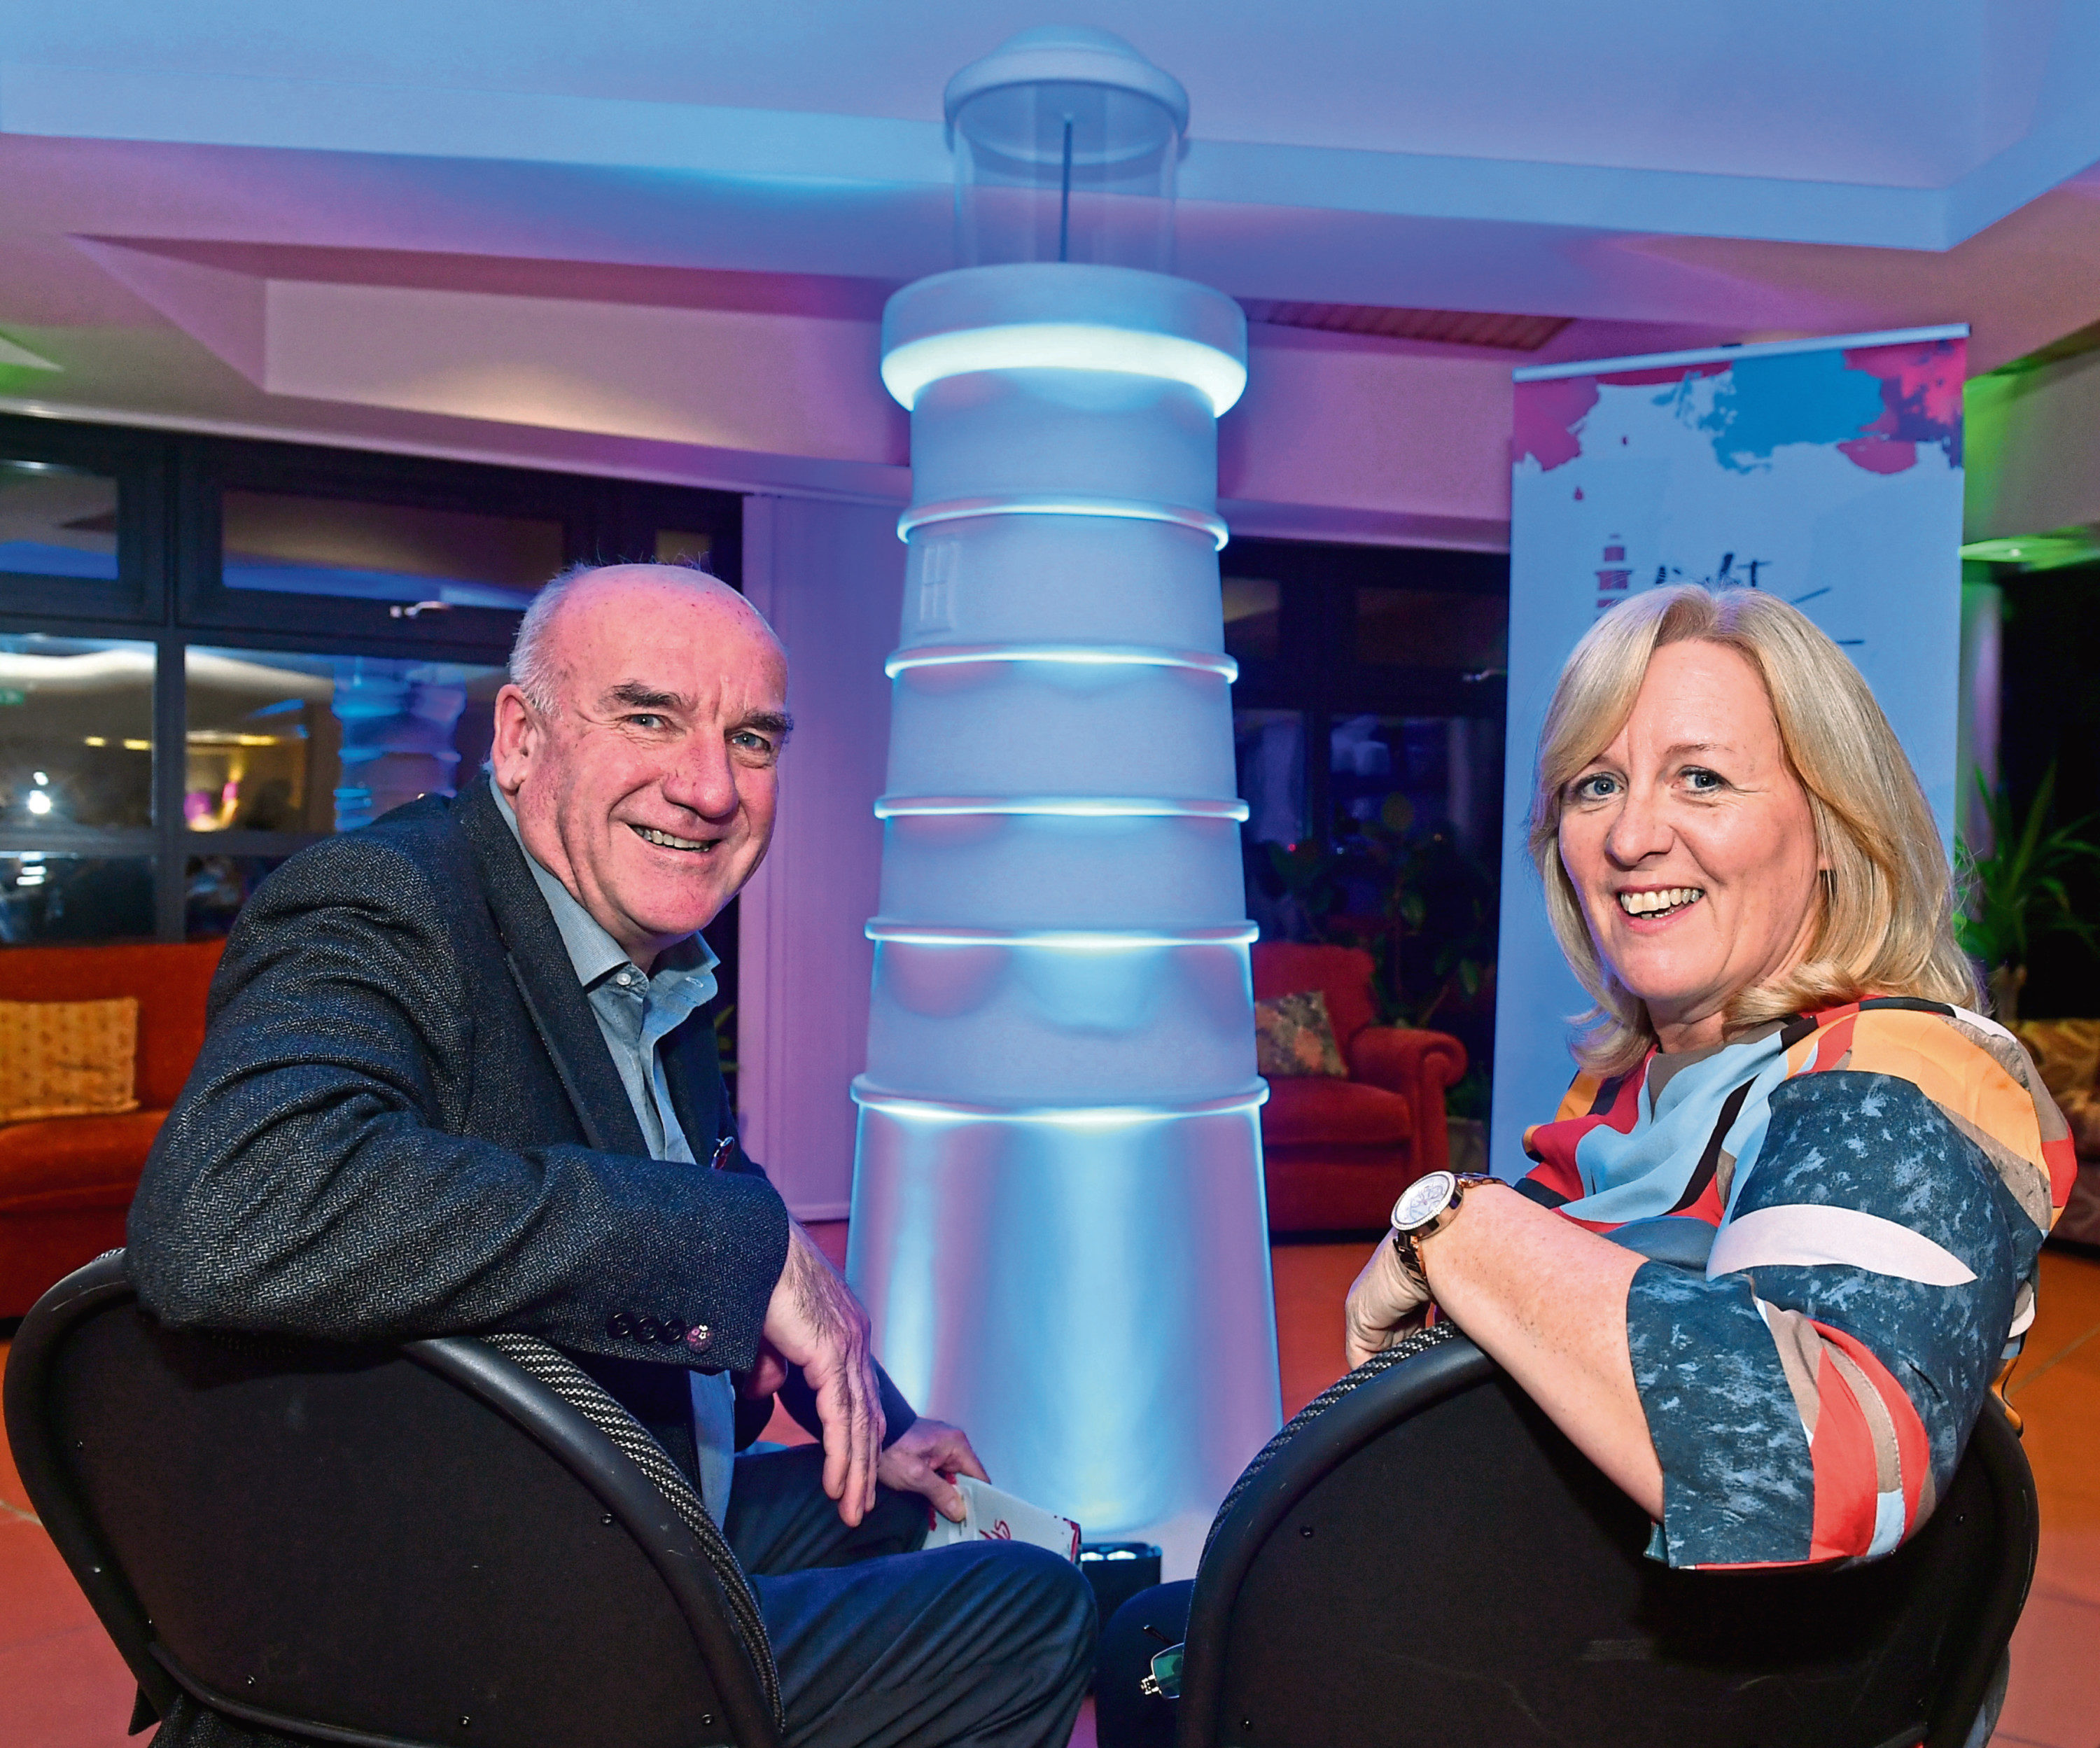 Hugh Little, chairman of Clan, and Colette Backwell, chief executive of Clan, pictured at the launch of Light the North, the lighthouse trail